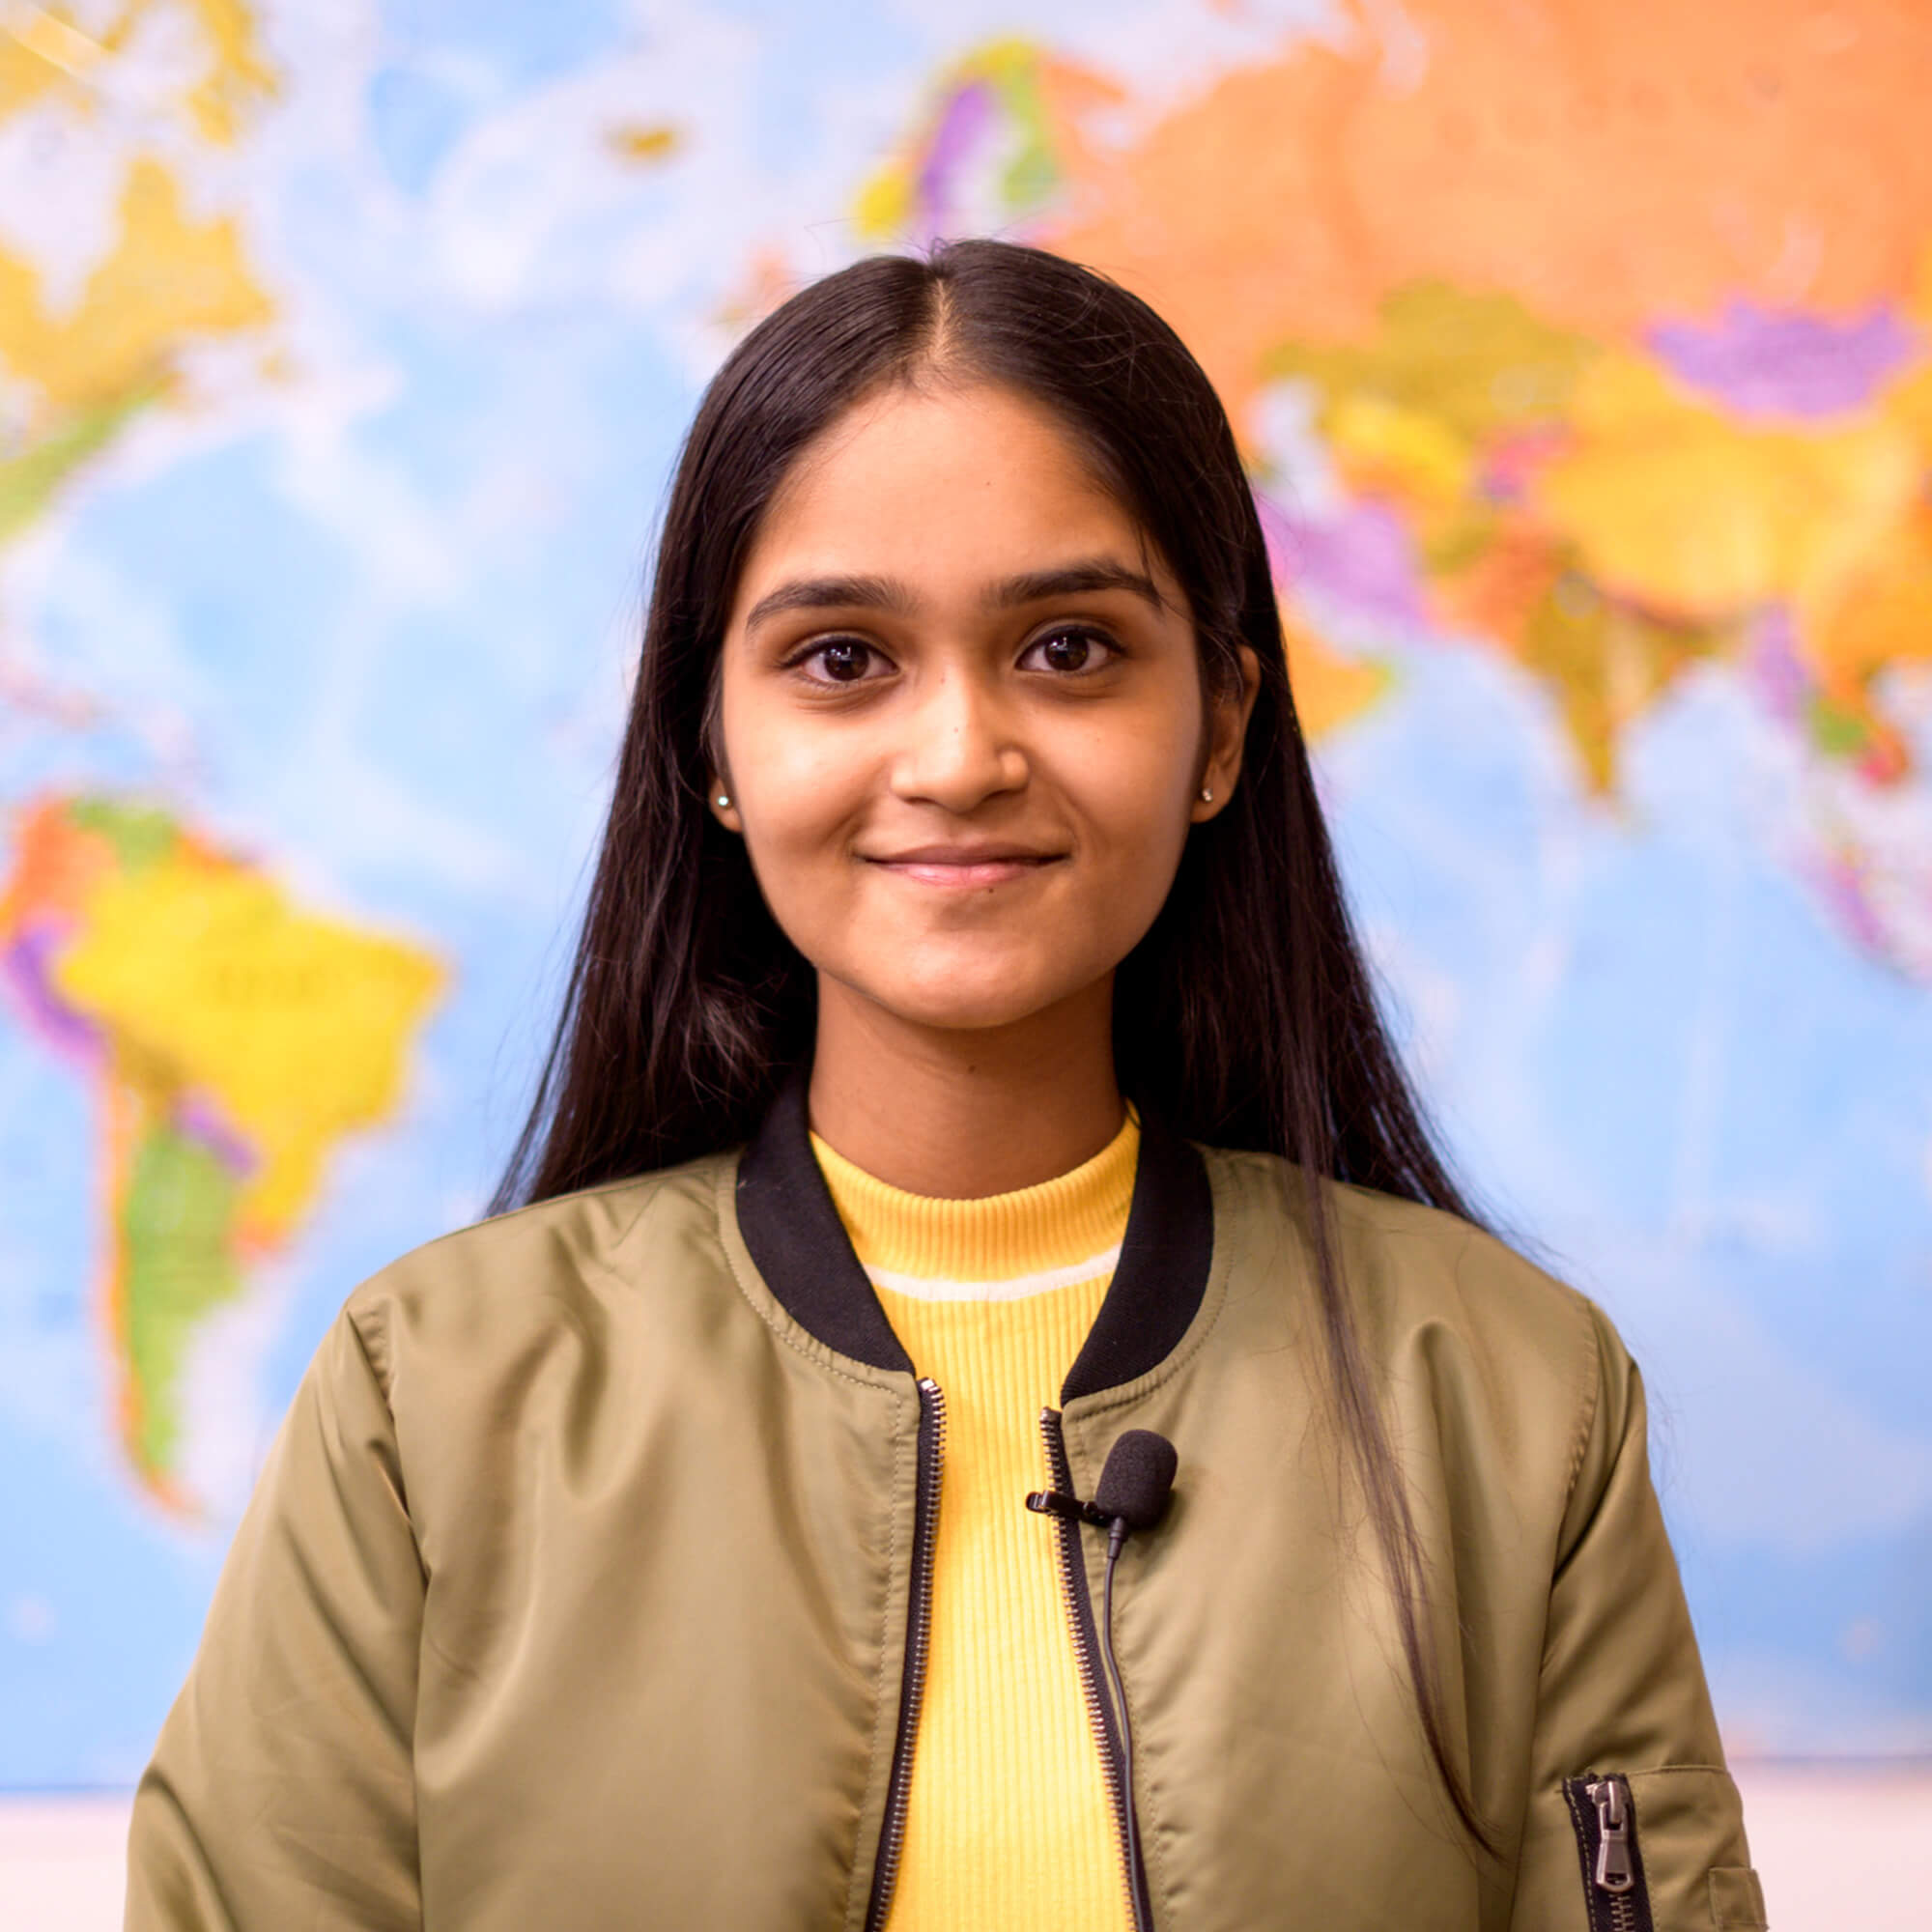 A photo of international student Mohika Shankar